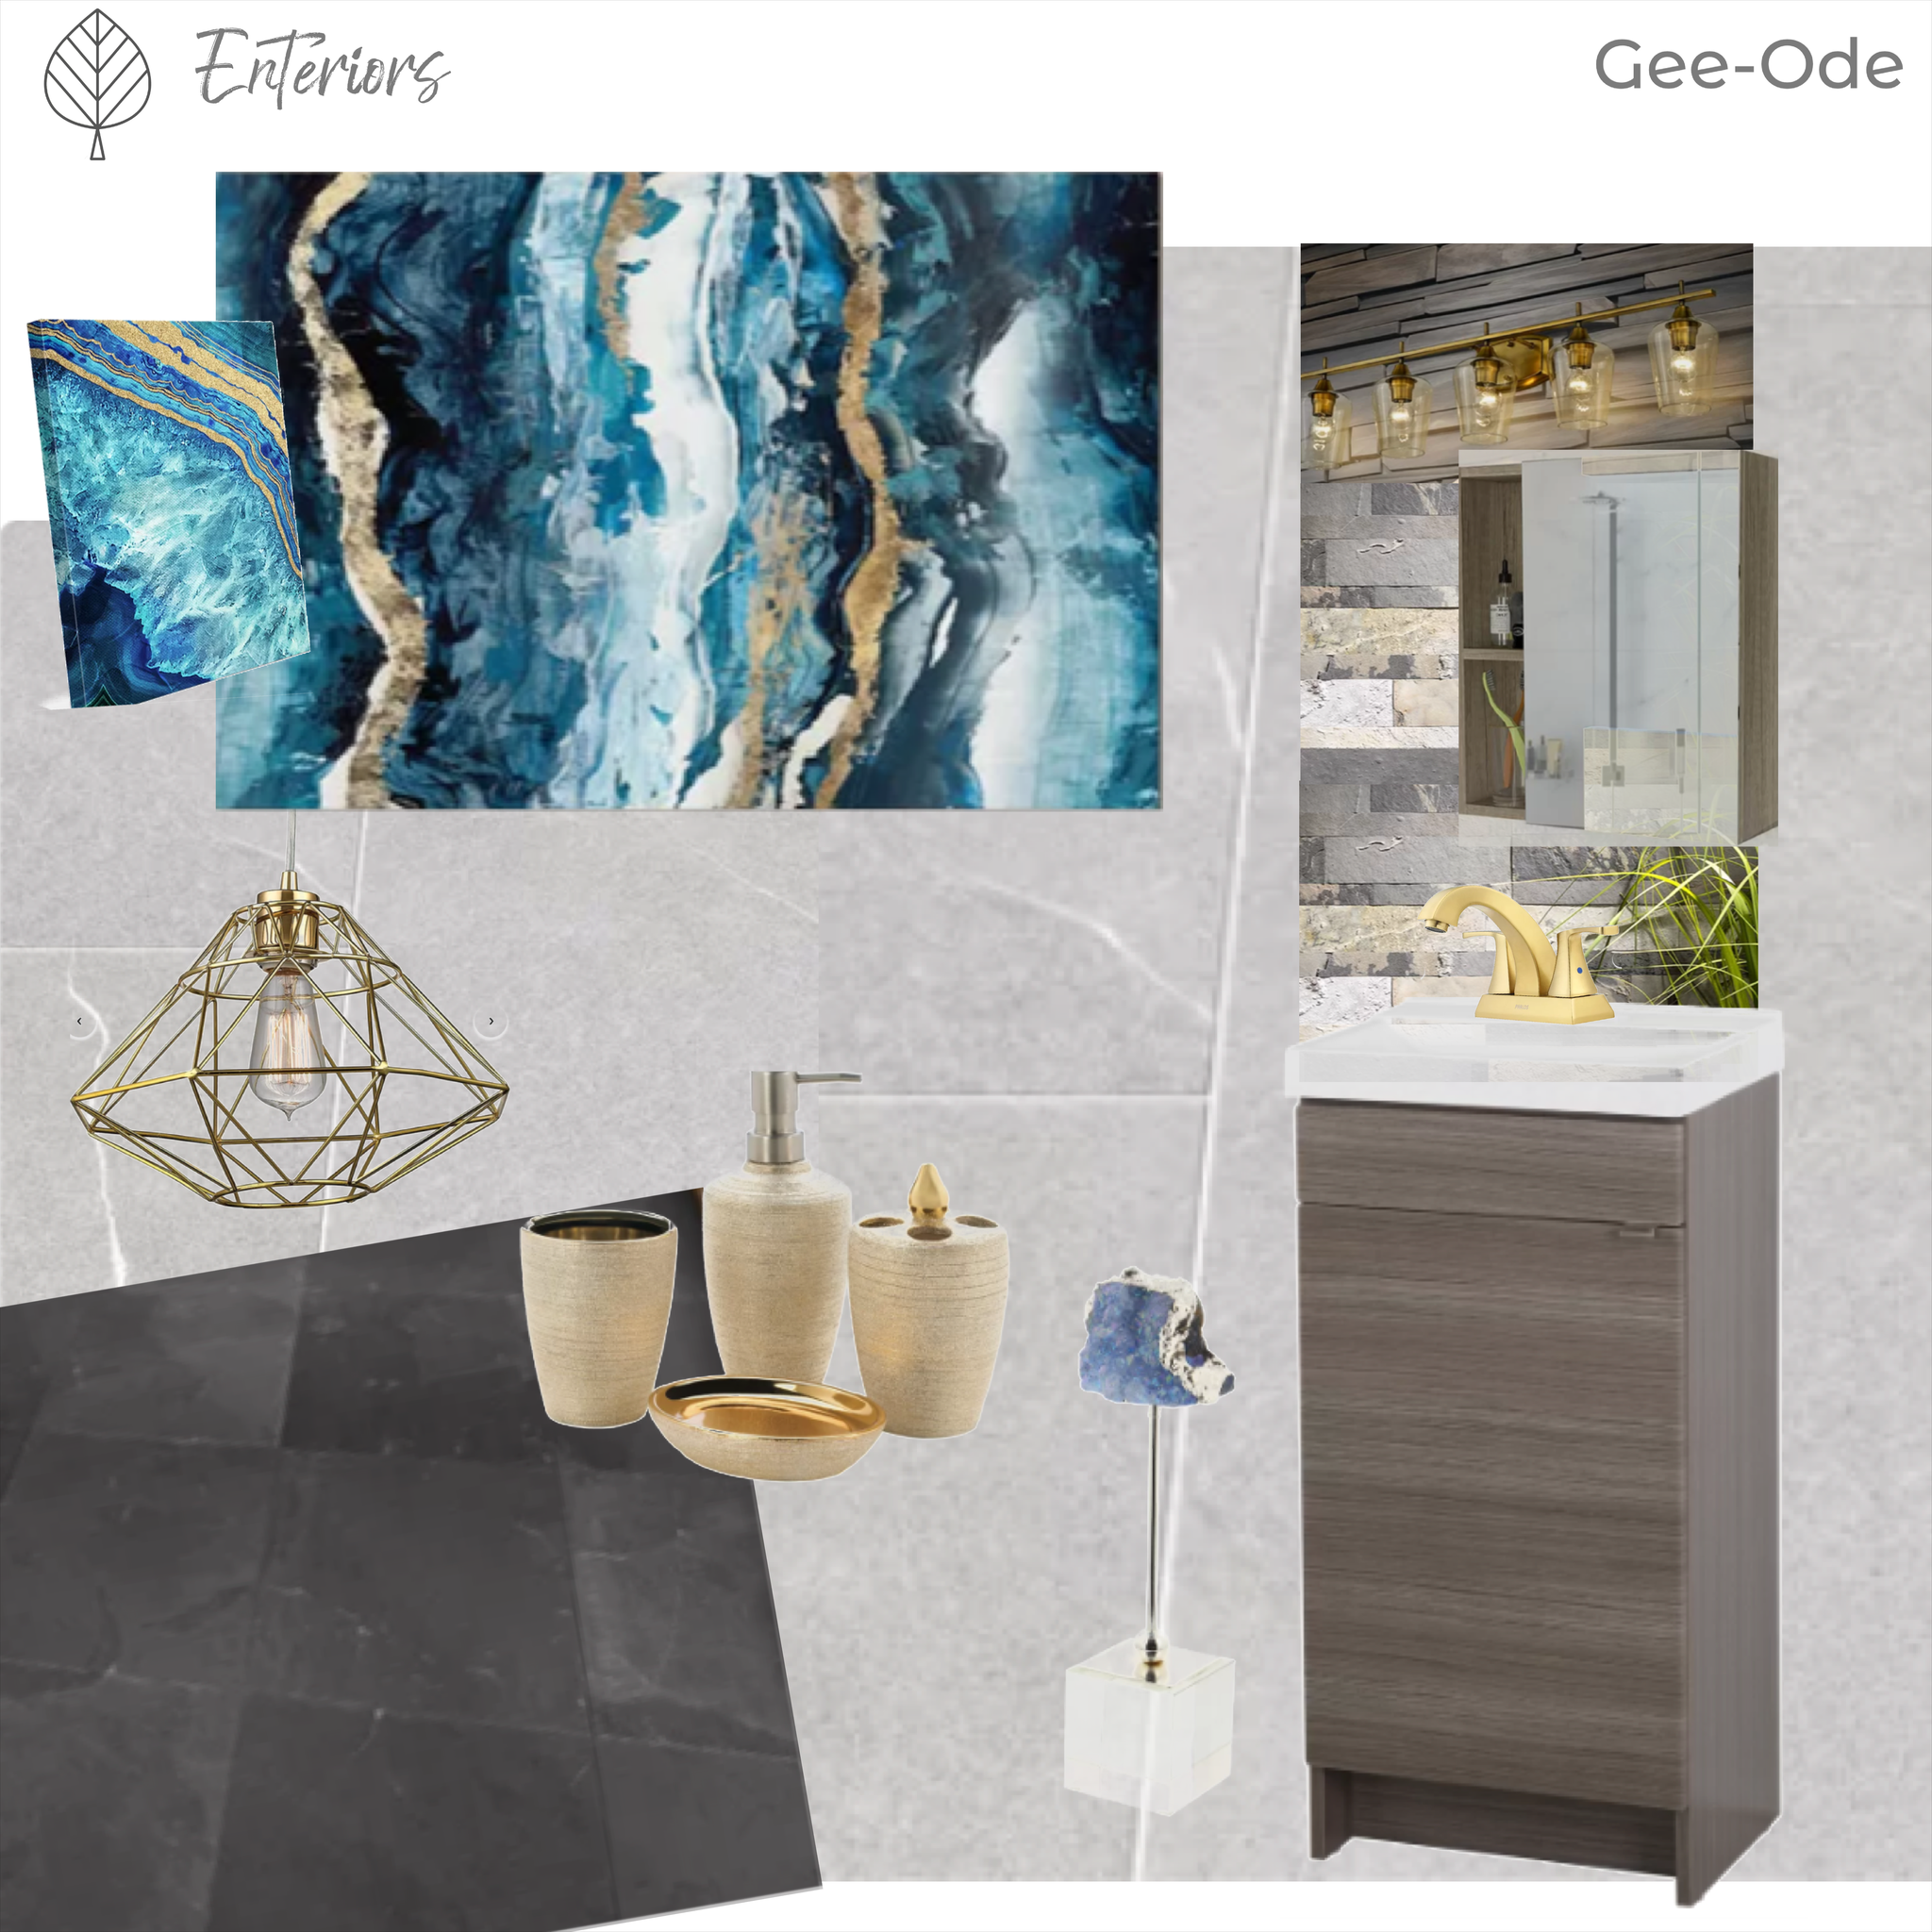 Style Board – Gee-Ode